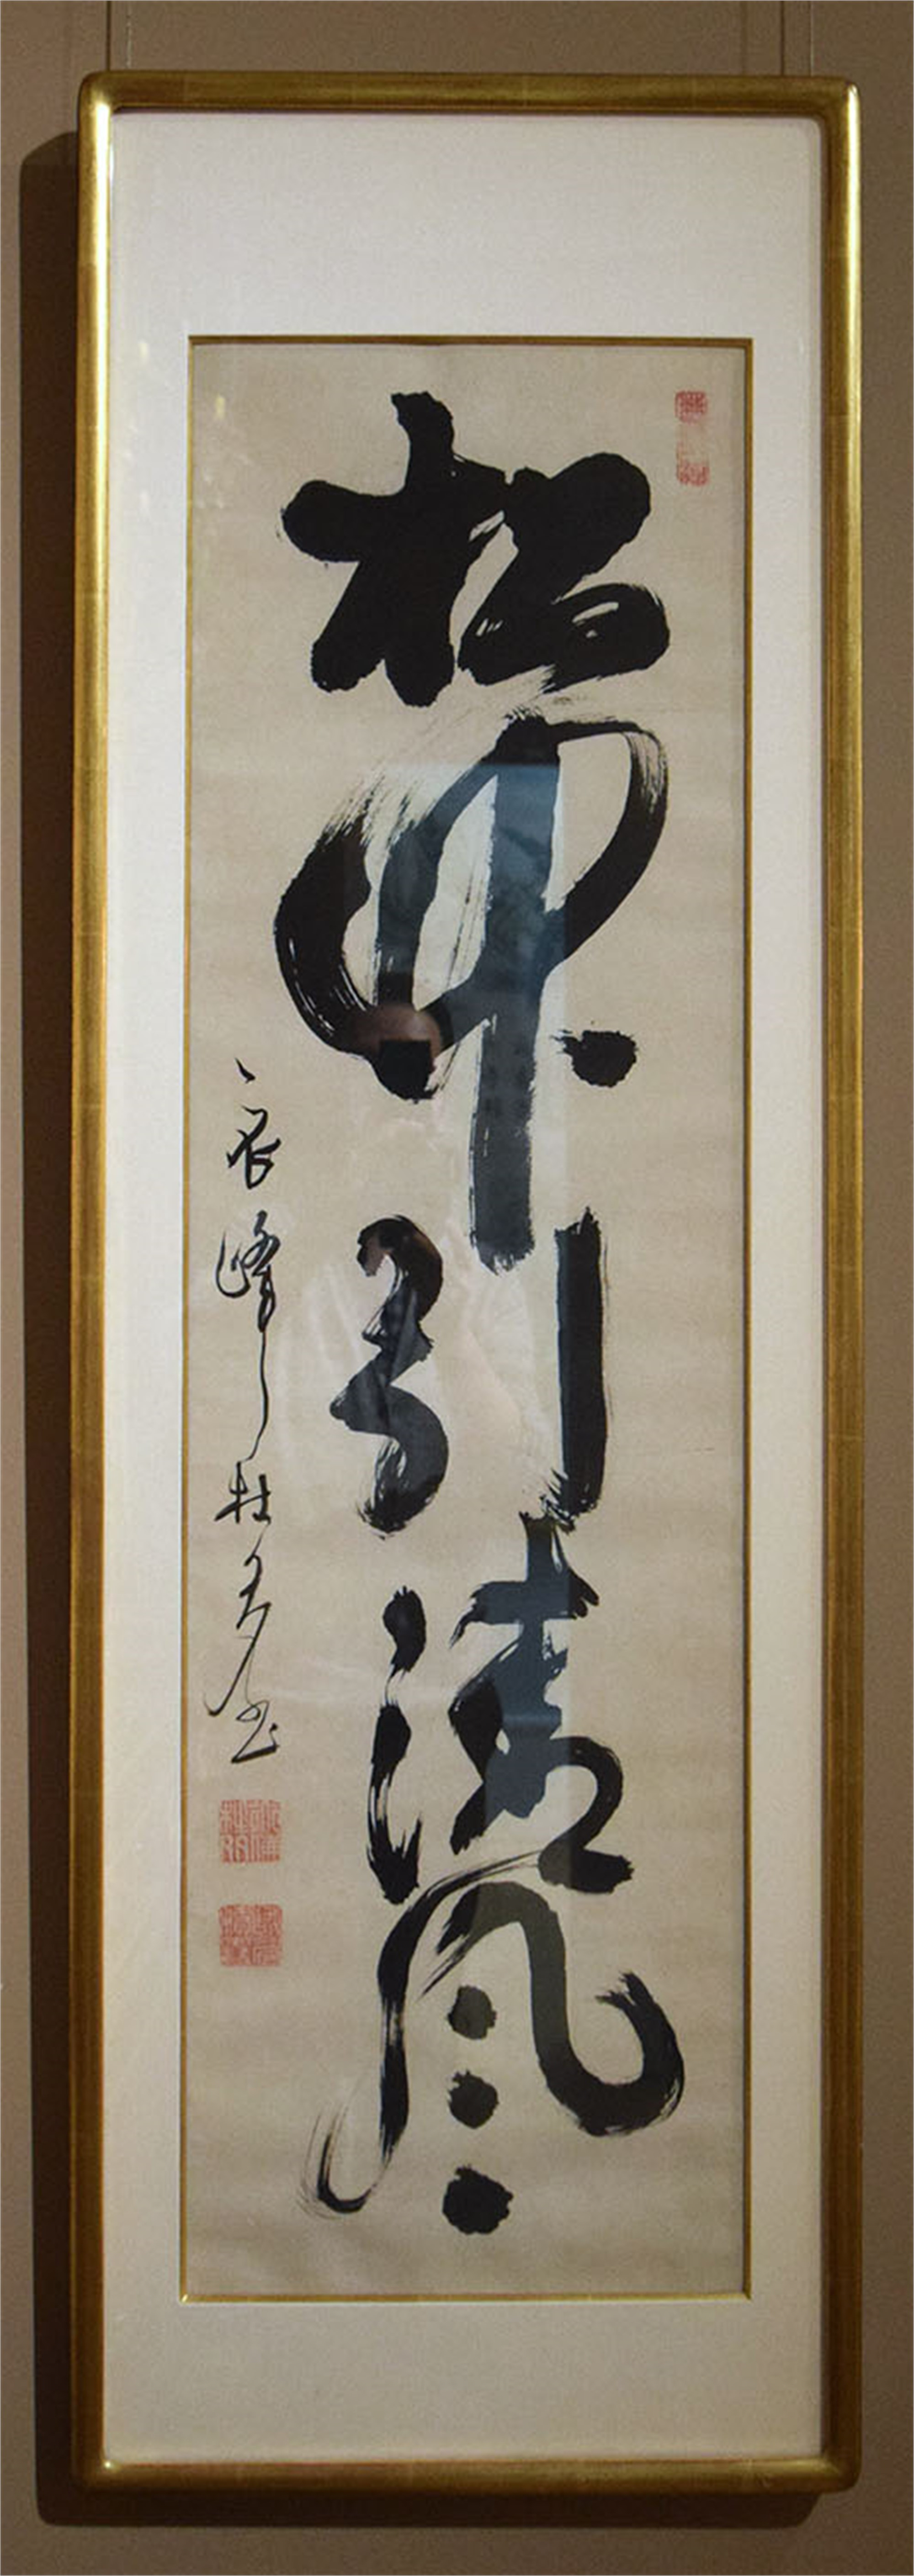 JAPANESE HANGING SCROLL WITH PINE/BAMBOO POEM SIGNED TENRYU KEISHU SHO